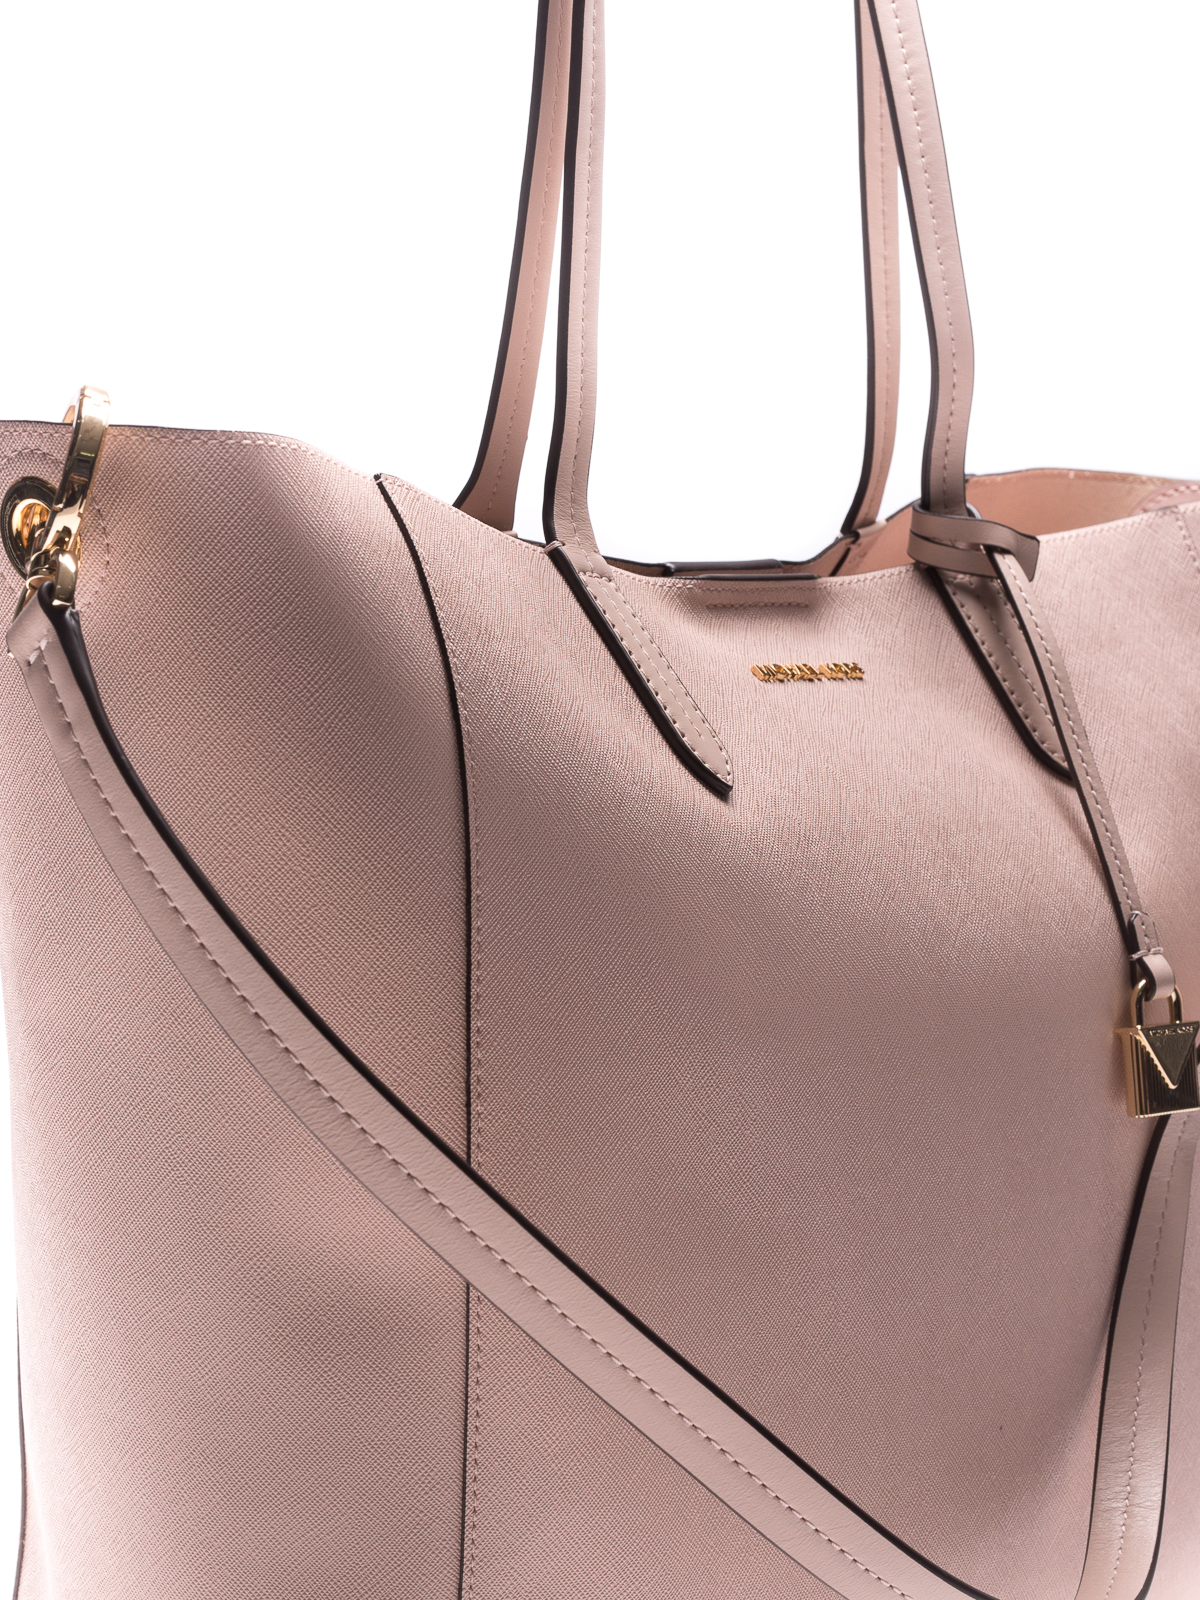 77096c715946 6fb49def03b6 Michael Kors - Penny convertible pink twill tote - totes bags  .. ...